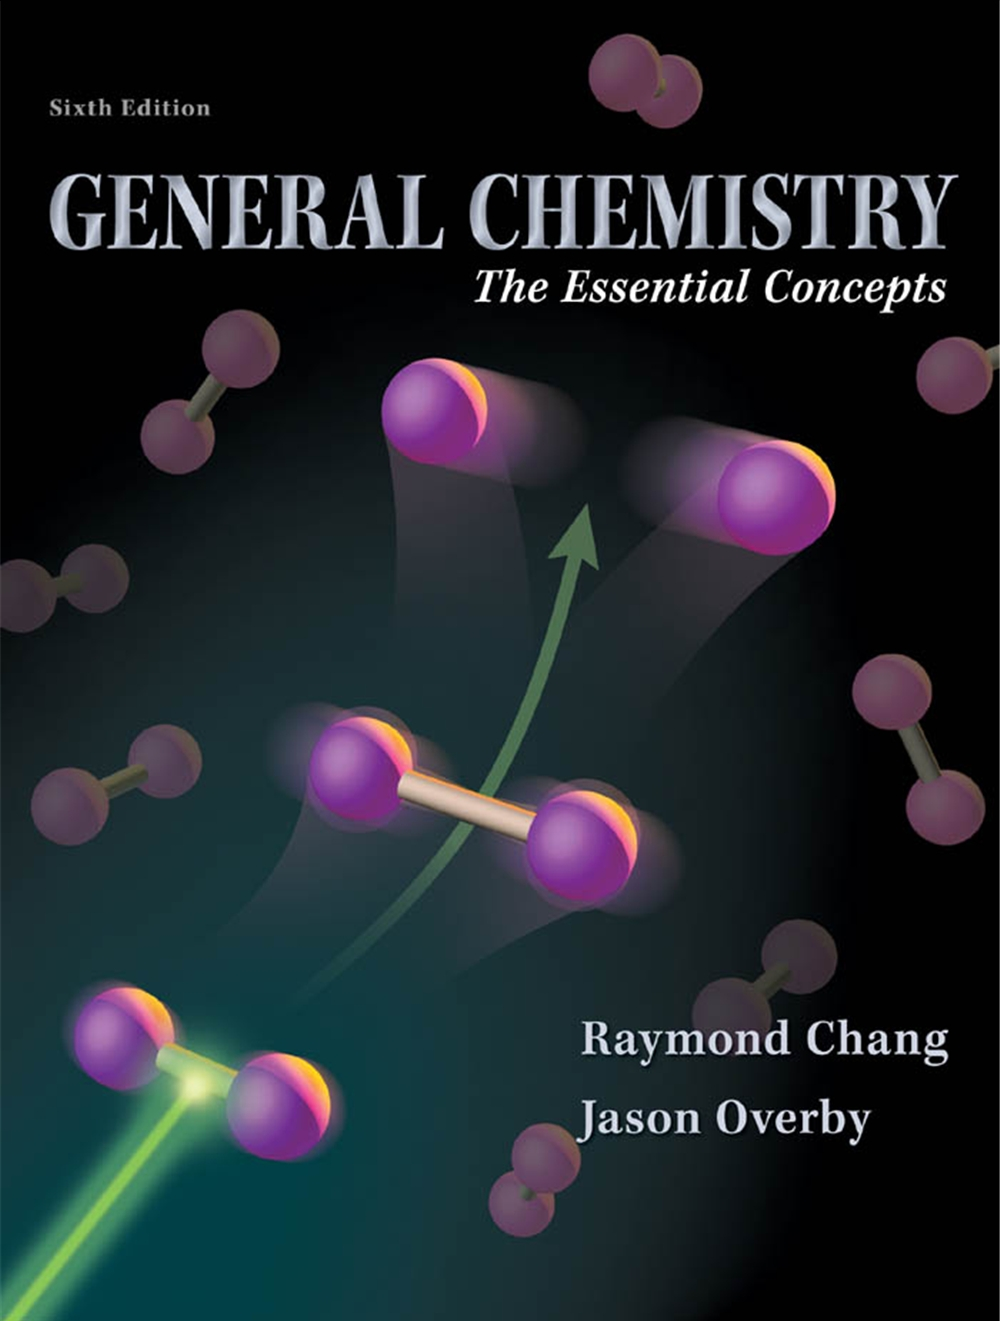 general chemistry Uci chem 1a general chemistry (winter 2013)lec 01 general chemistry introduction to general chemistryview the complete course:.